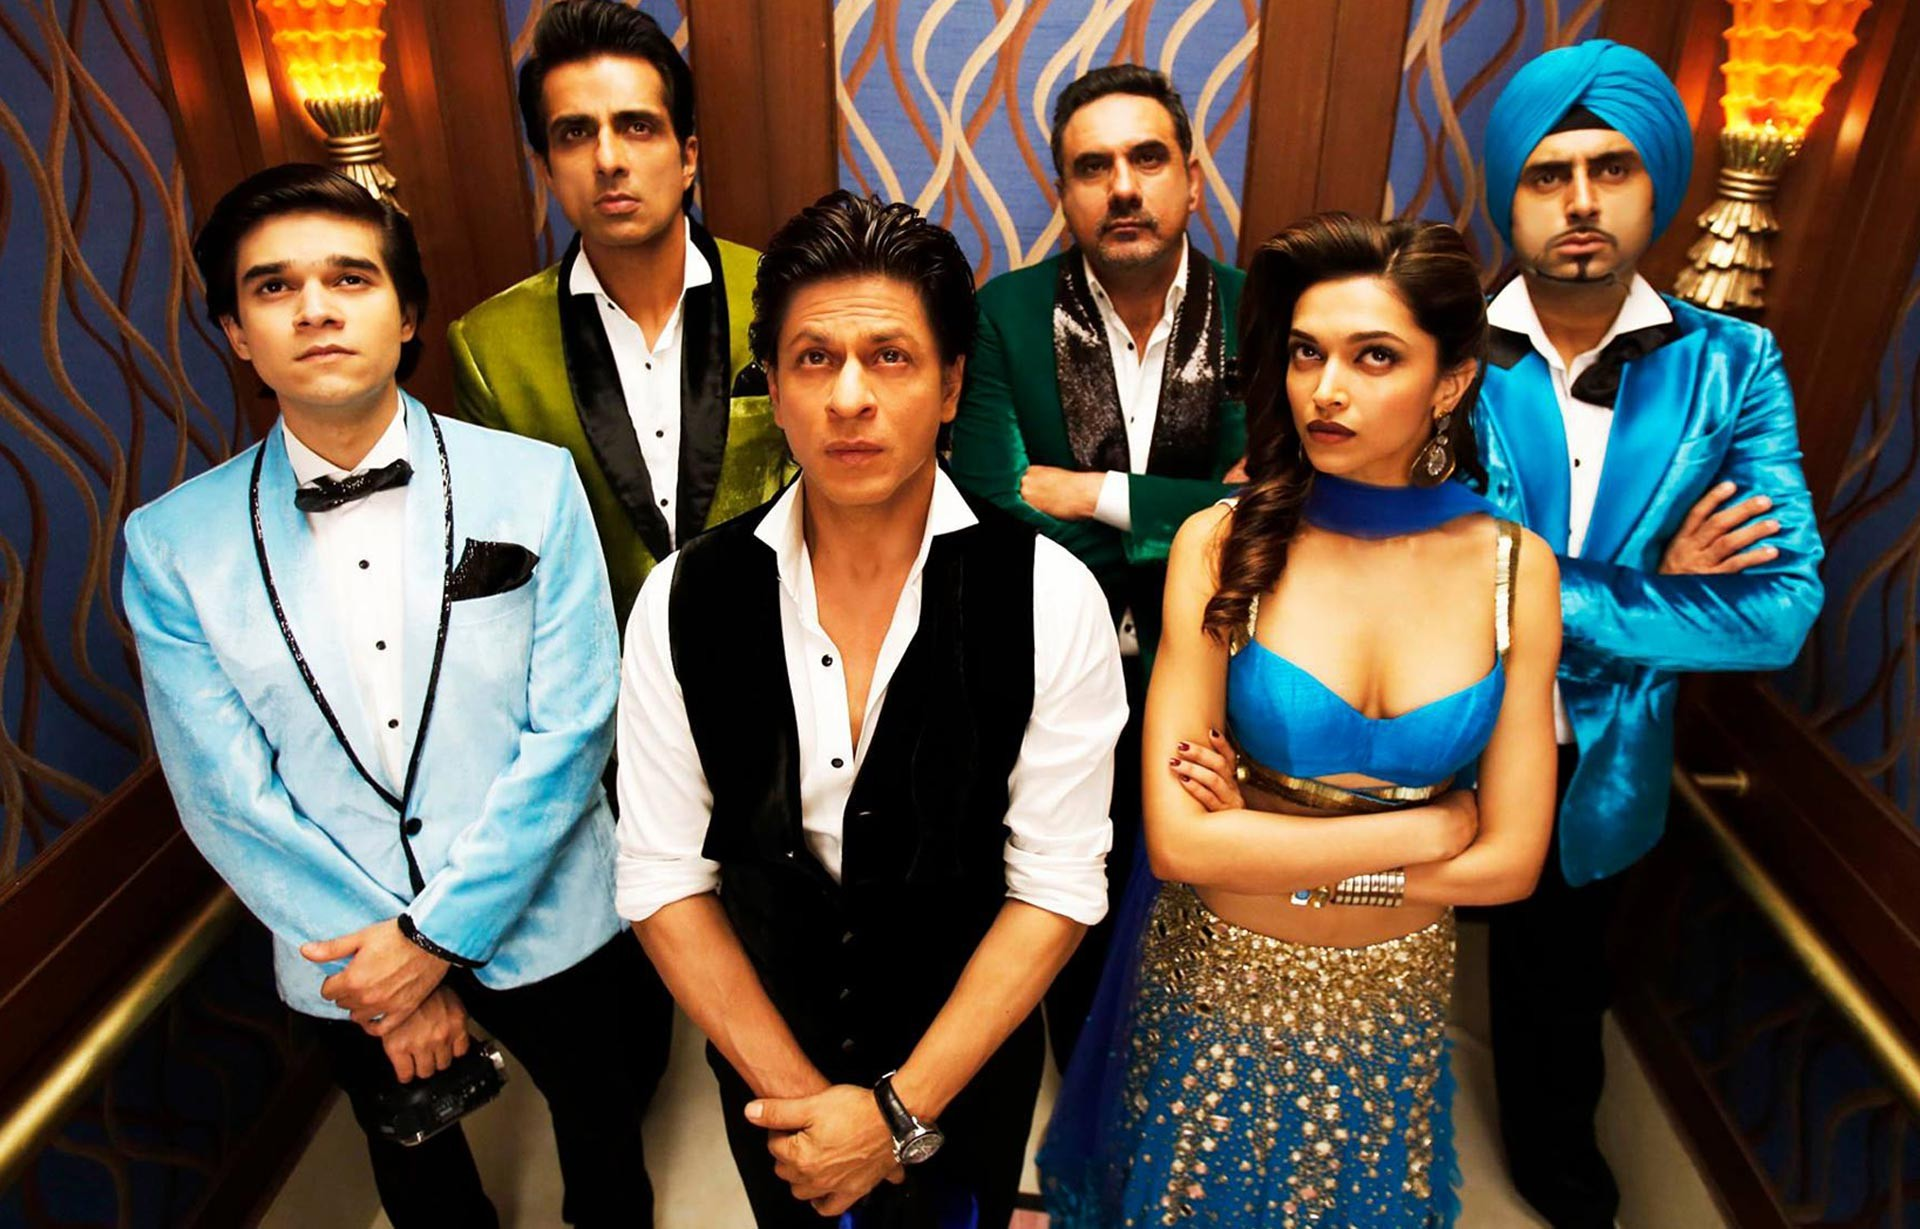 Photo Credit http://www.bollywooddilse.com/happy-new-year-movie-total-box-office-collection/